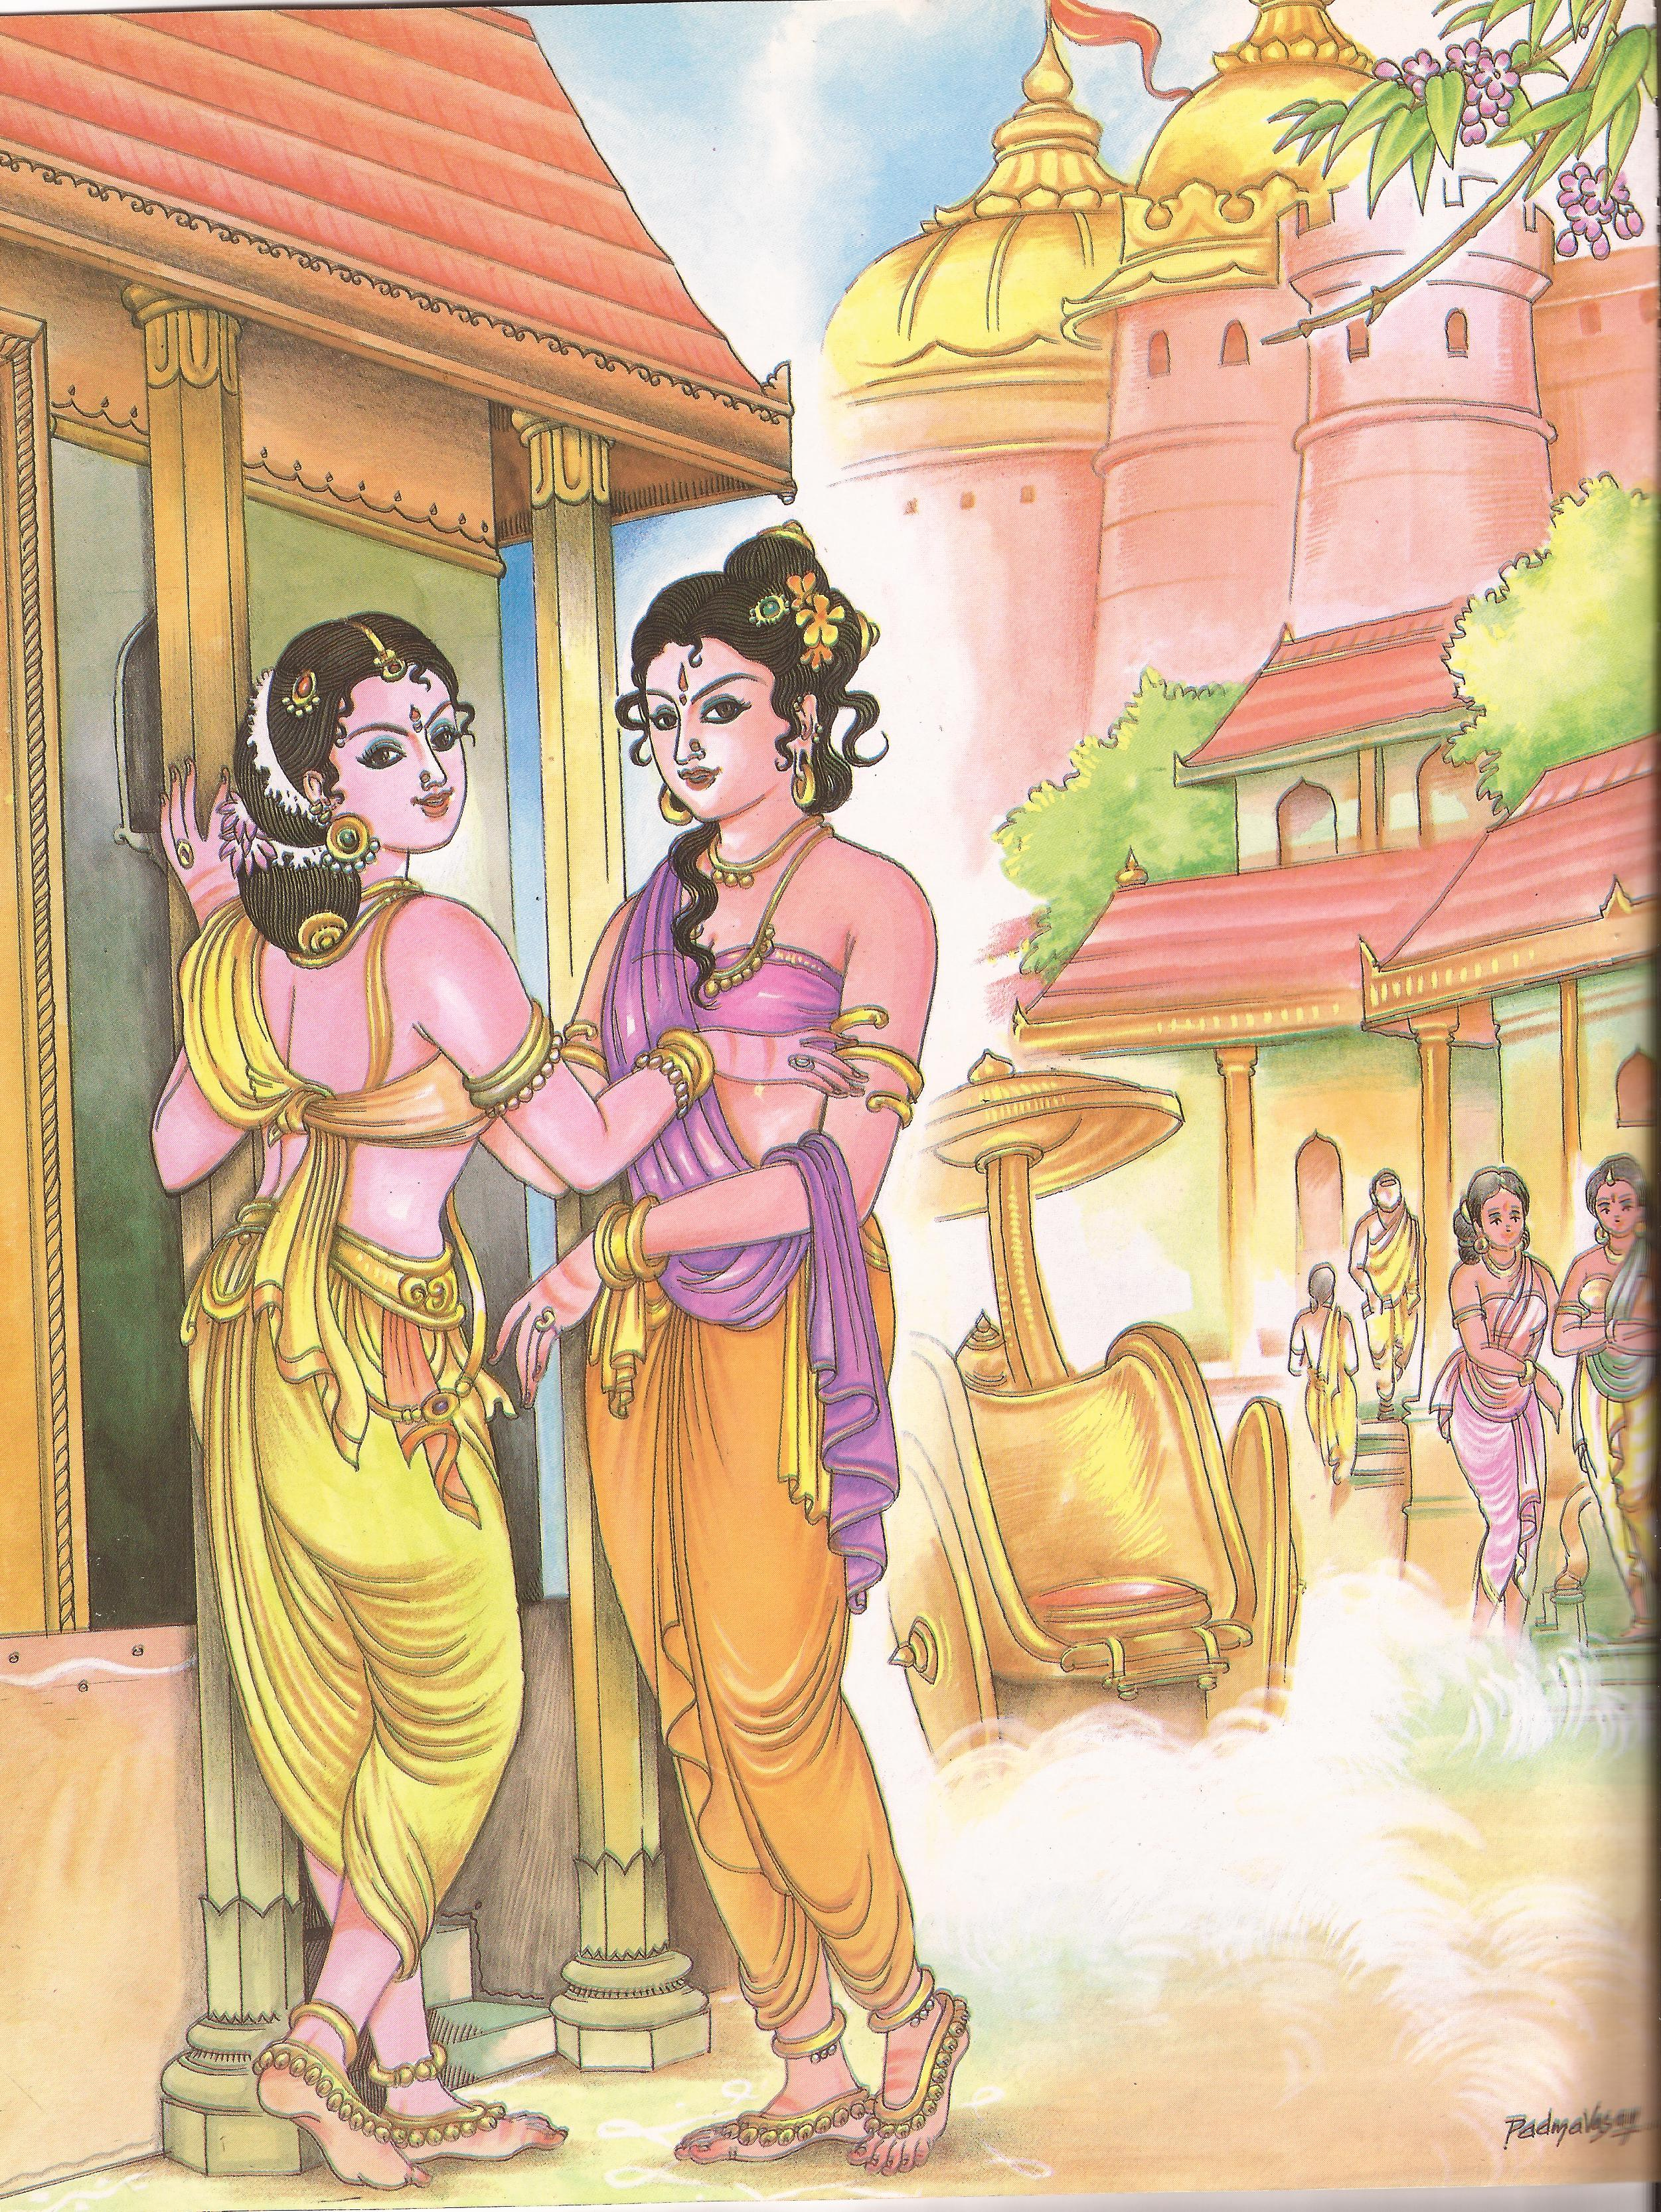 status of women in modern days in india Could the reverence given to hindu goddesses translate into a higher or lower status for india's women girls and women in modern-day india guardian news and.